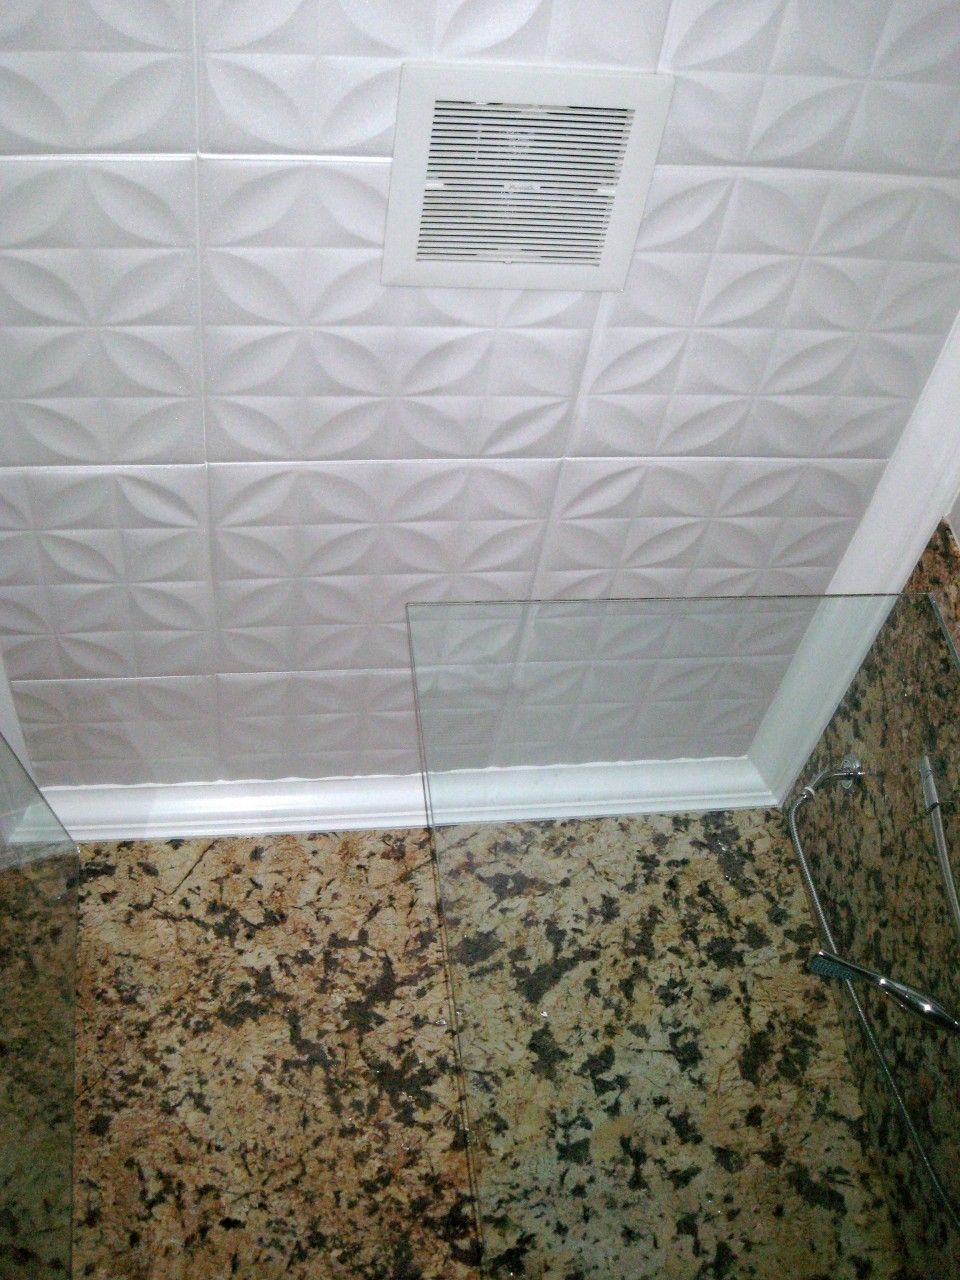 Cover popcorn ceiling with tiles gallery tile flooring design ideas cover popcorn ceiling with tiles gallery tile flooring design ideas cover popcorn ceiling with tiles image doublecrazyfo Images